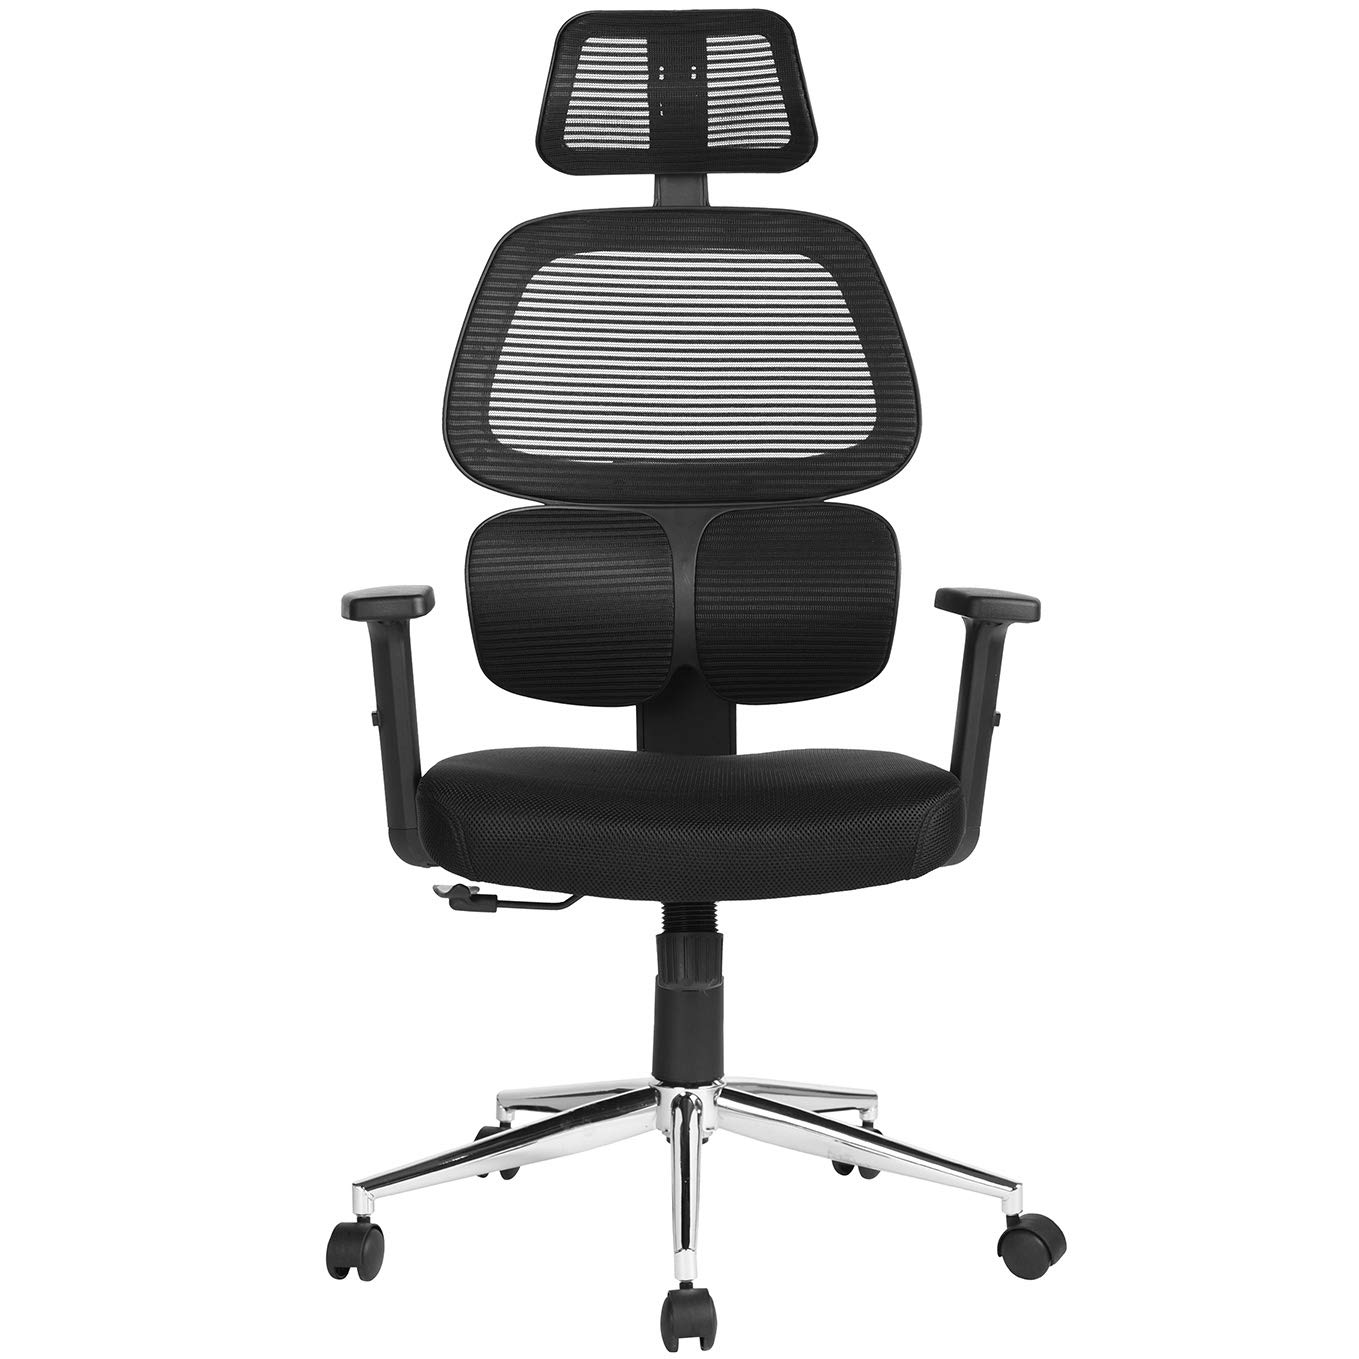 Update Ergonomic Office Chair Mesh Computer Desk Chair with Lumbar Support Adjustable Backrest Headrest Armrest High Back Swivel Task Executive Chairs for Home Office Conference, Black …